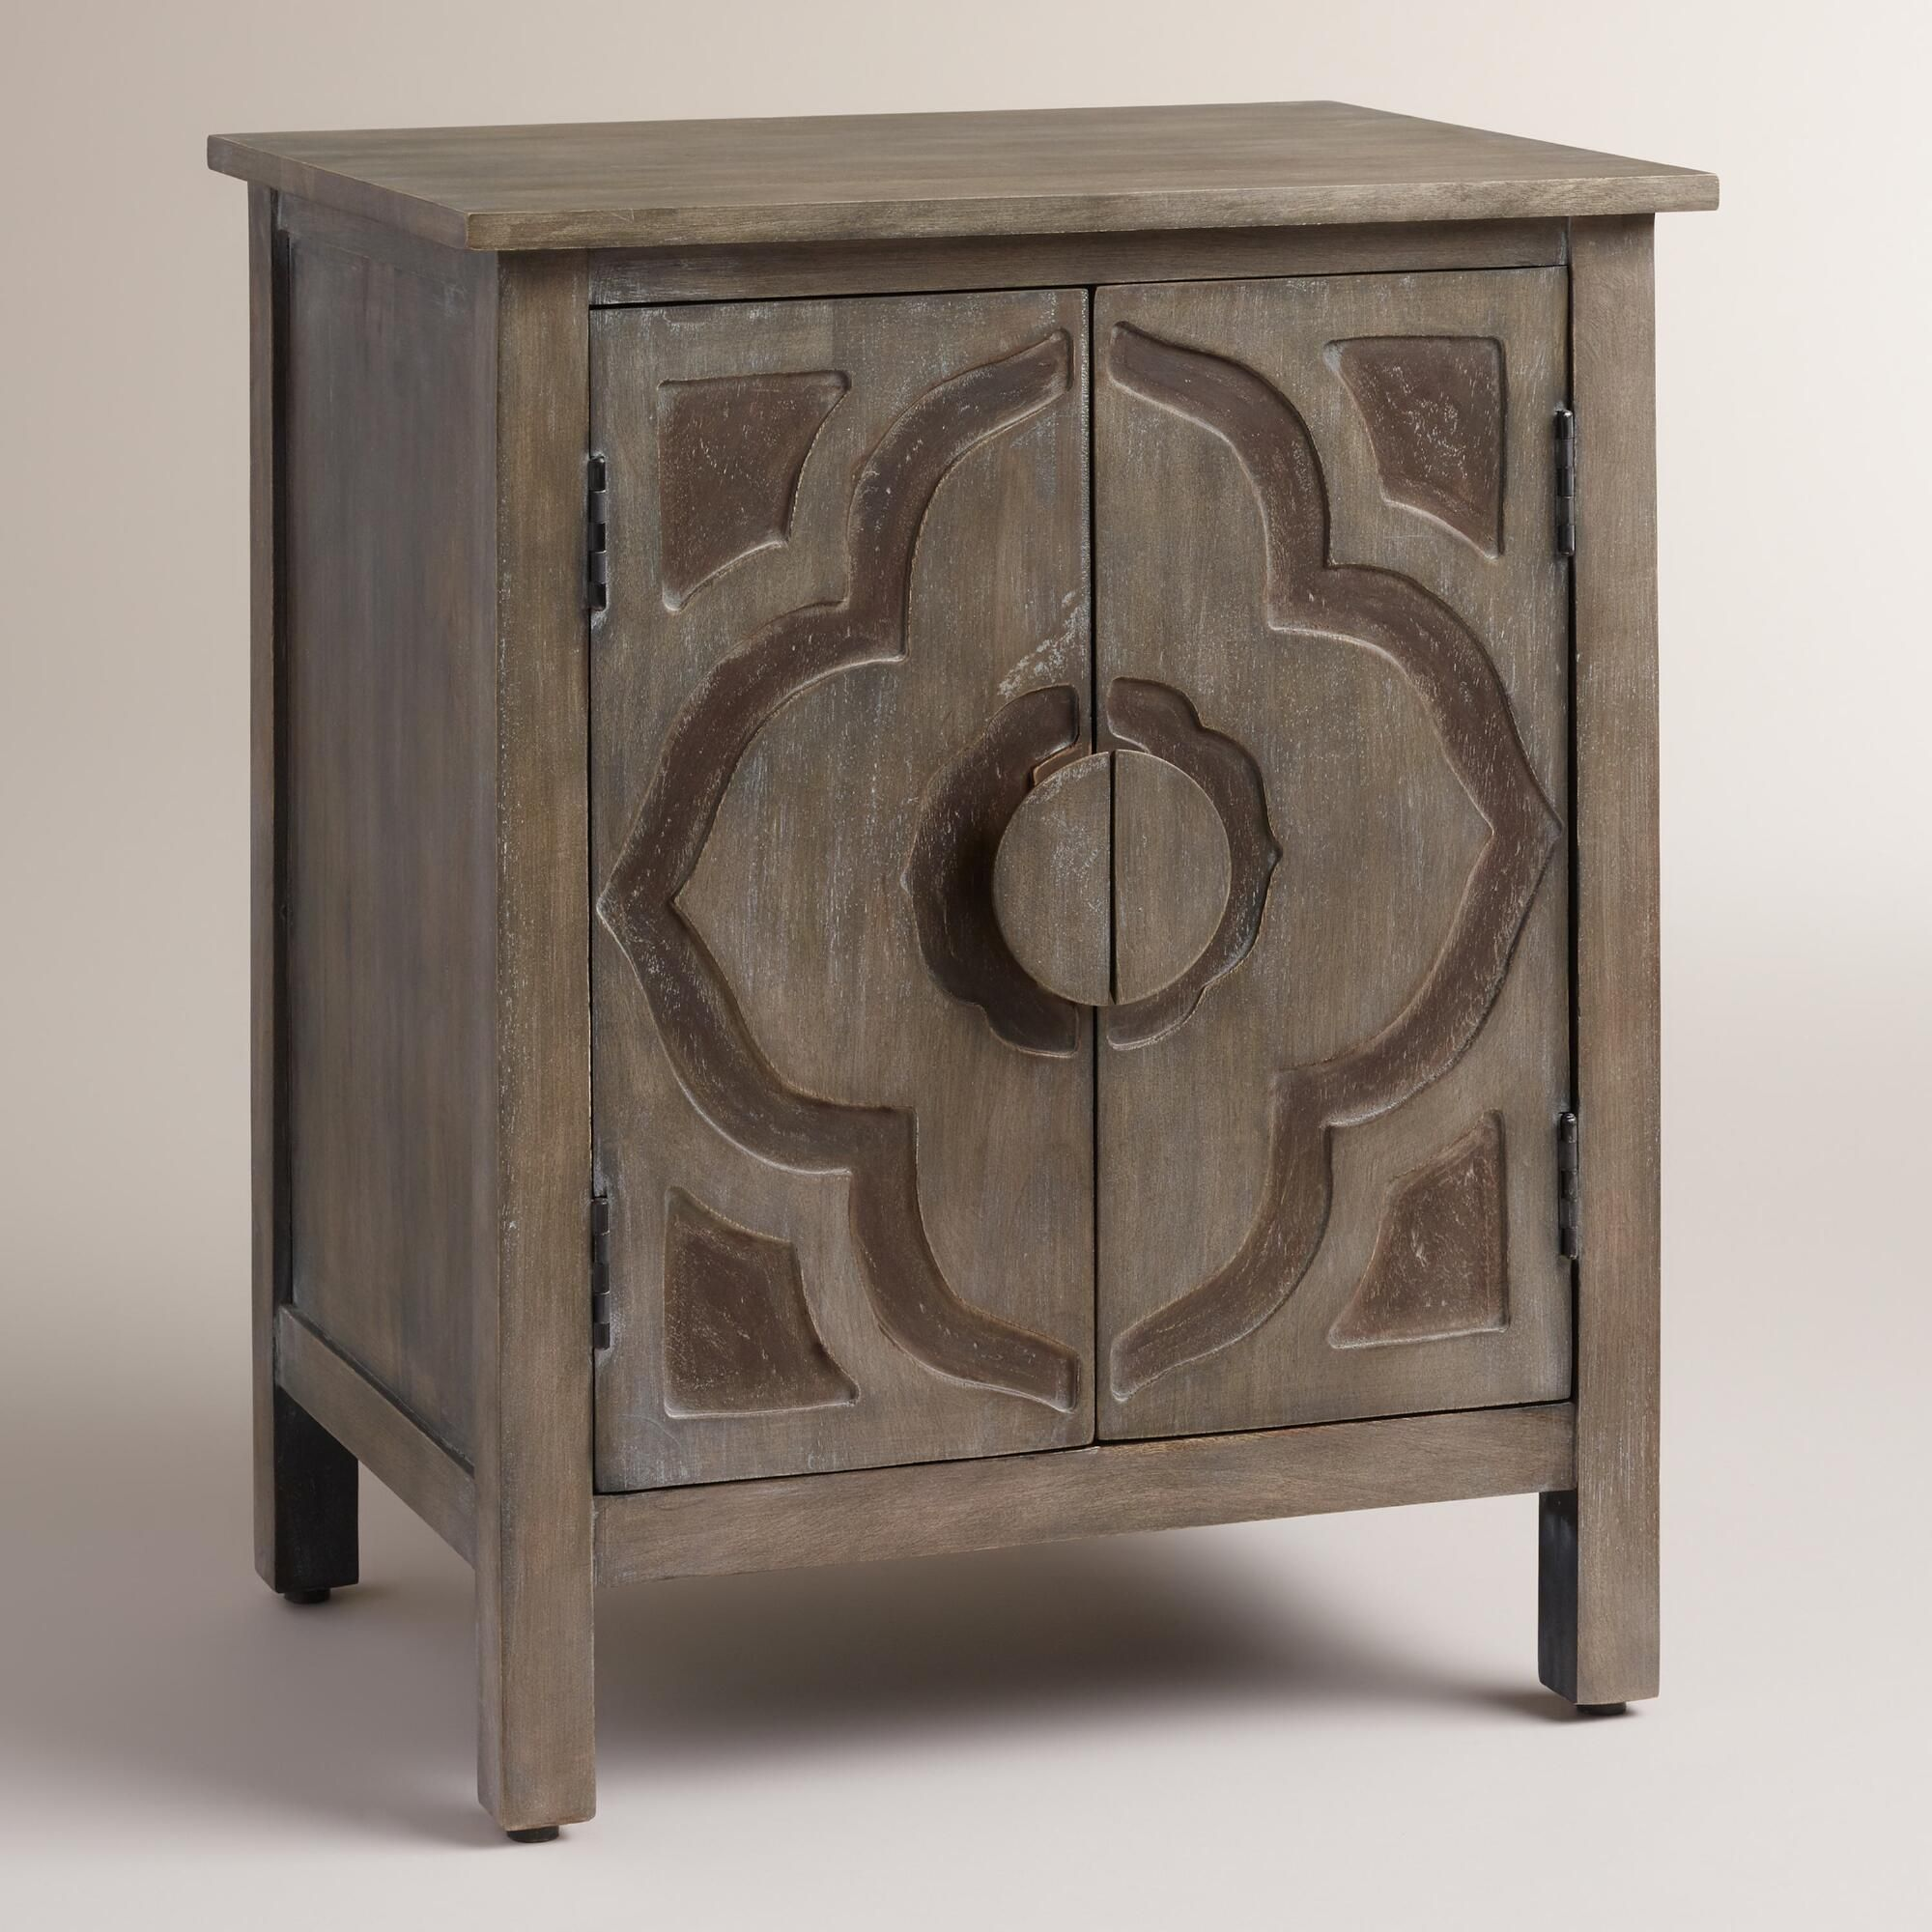 flowering lotus design carved into the handles and double doors linon galway accent table white featuring interior shelf drawer storage makes bohemian nightstand side art deco